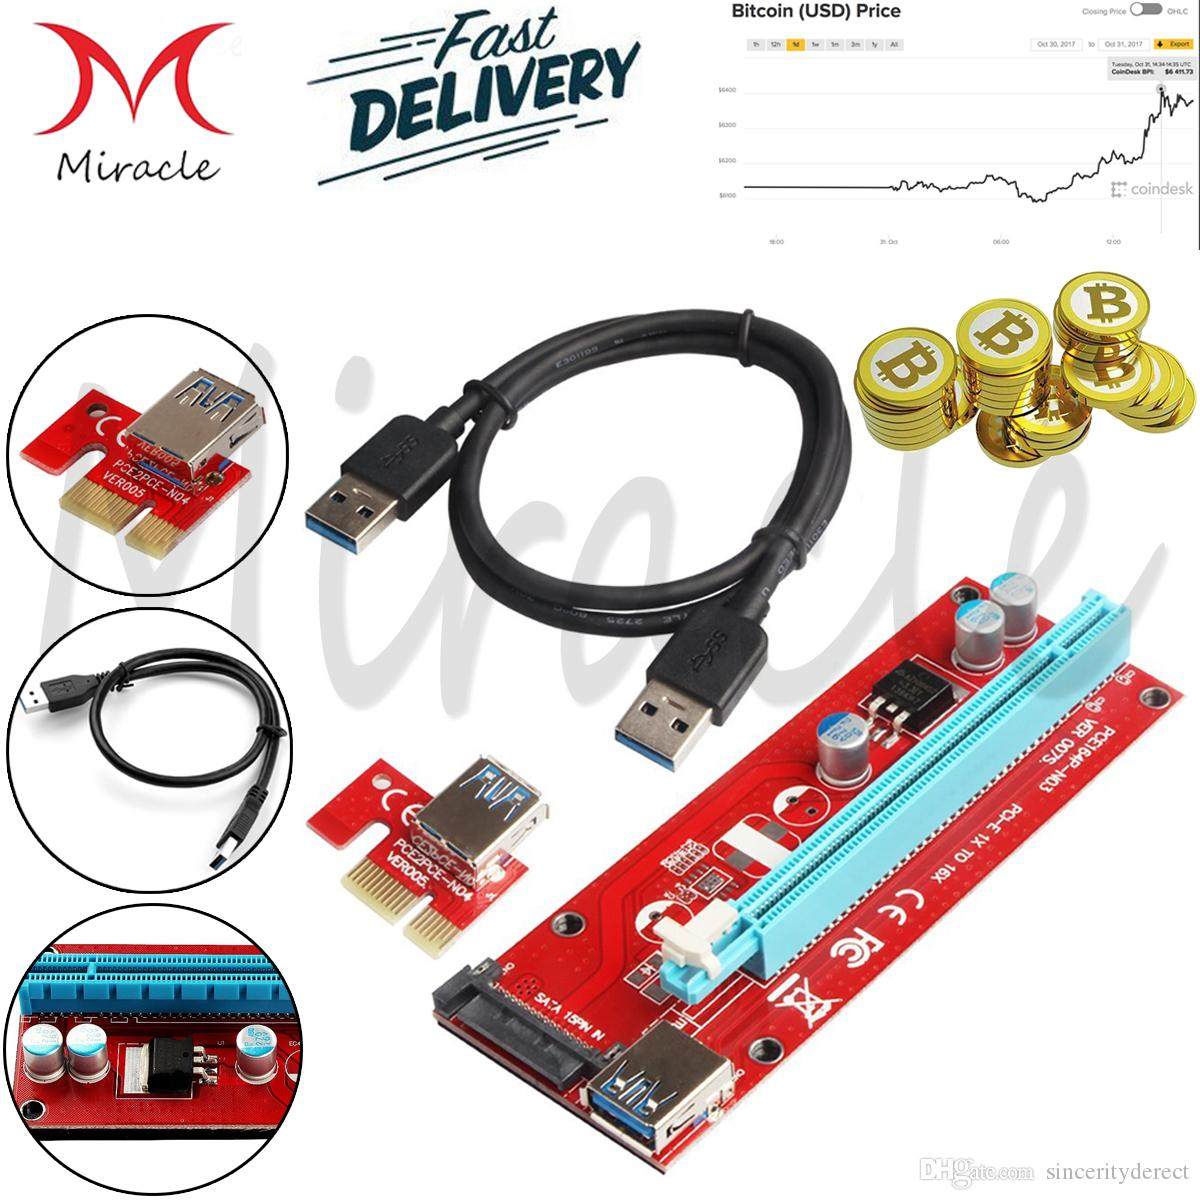 PCI Riser Express 1X to 16X Riser Card USB 3.0 Extender Cable with Power Supply for Bitcoin Litecoin Miner